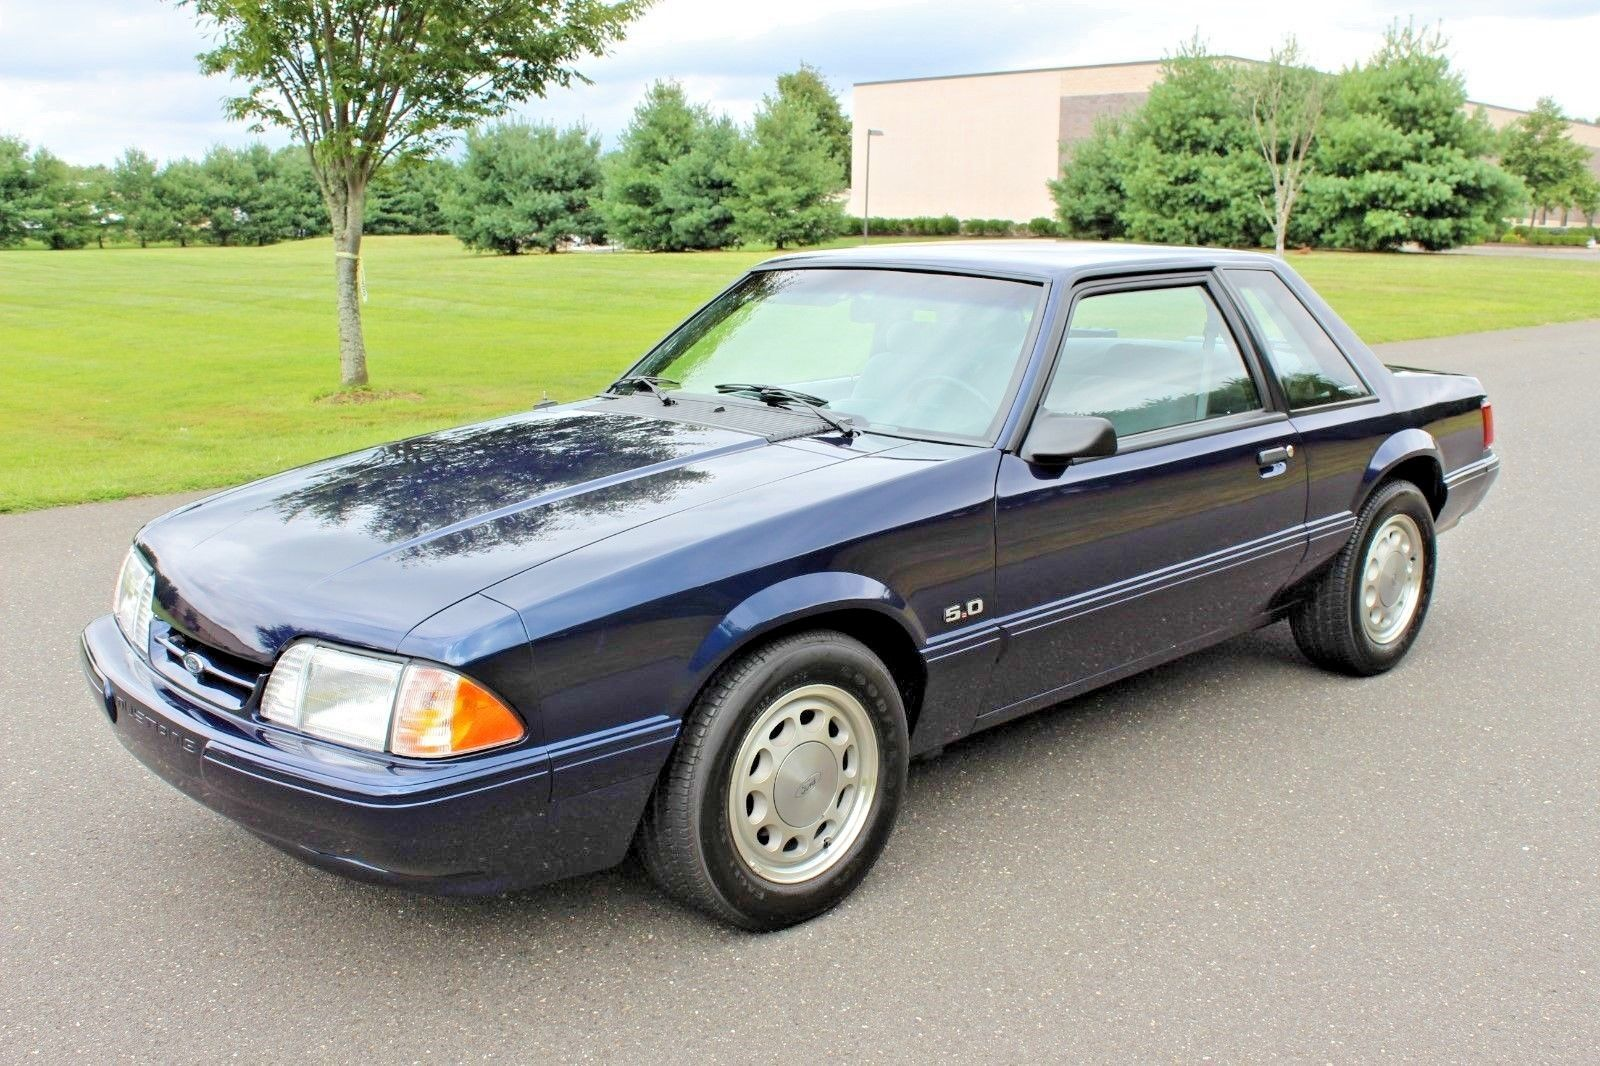 Awesome 1993 ford mustang ssp 1993 ford mustang ssp 63998 miles no reserve 2018